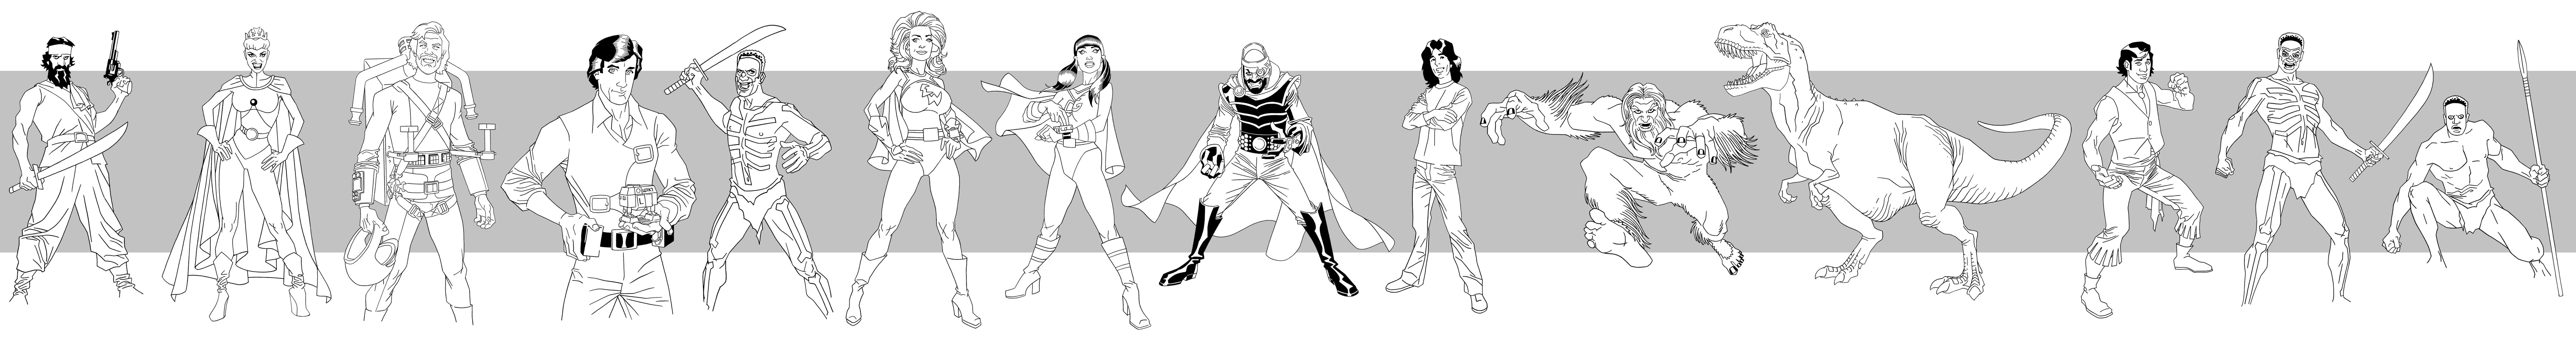 Saturday Morning Line-Up by dusty-abell